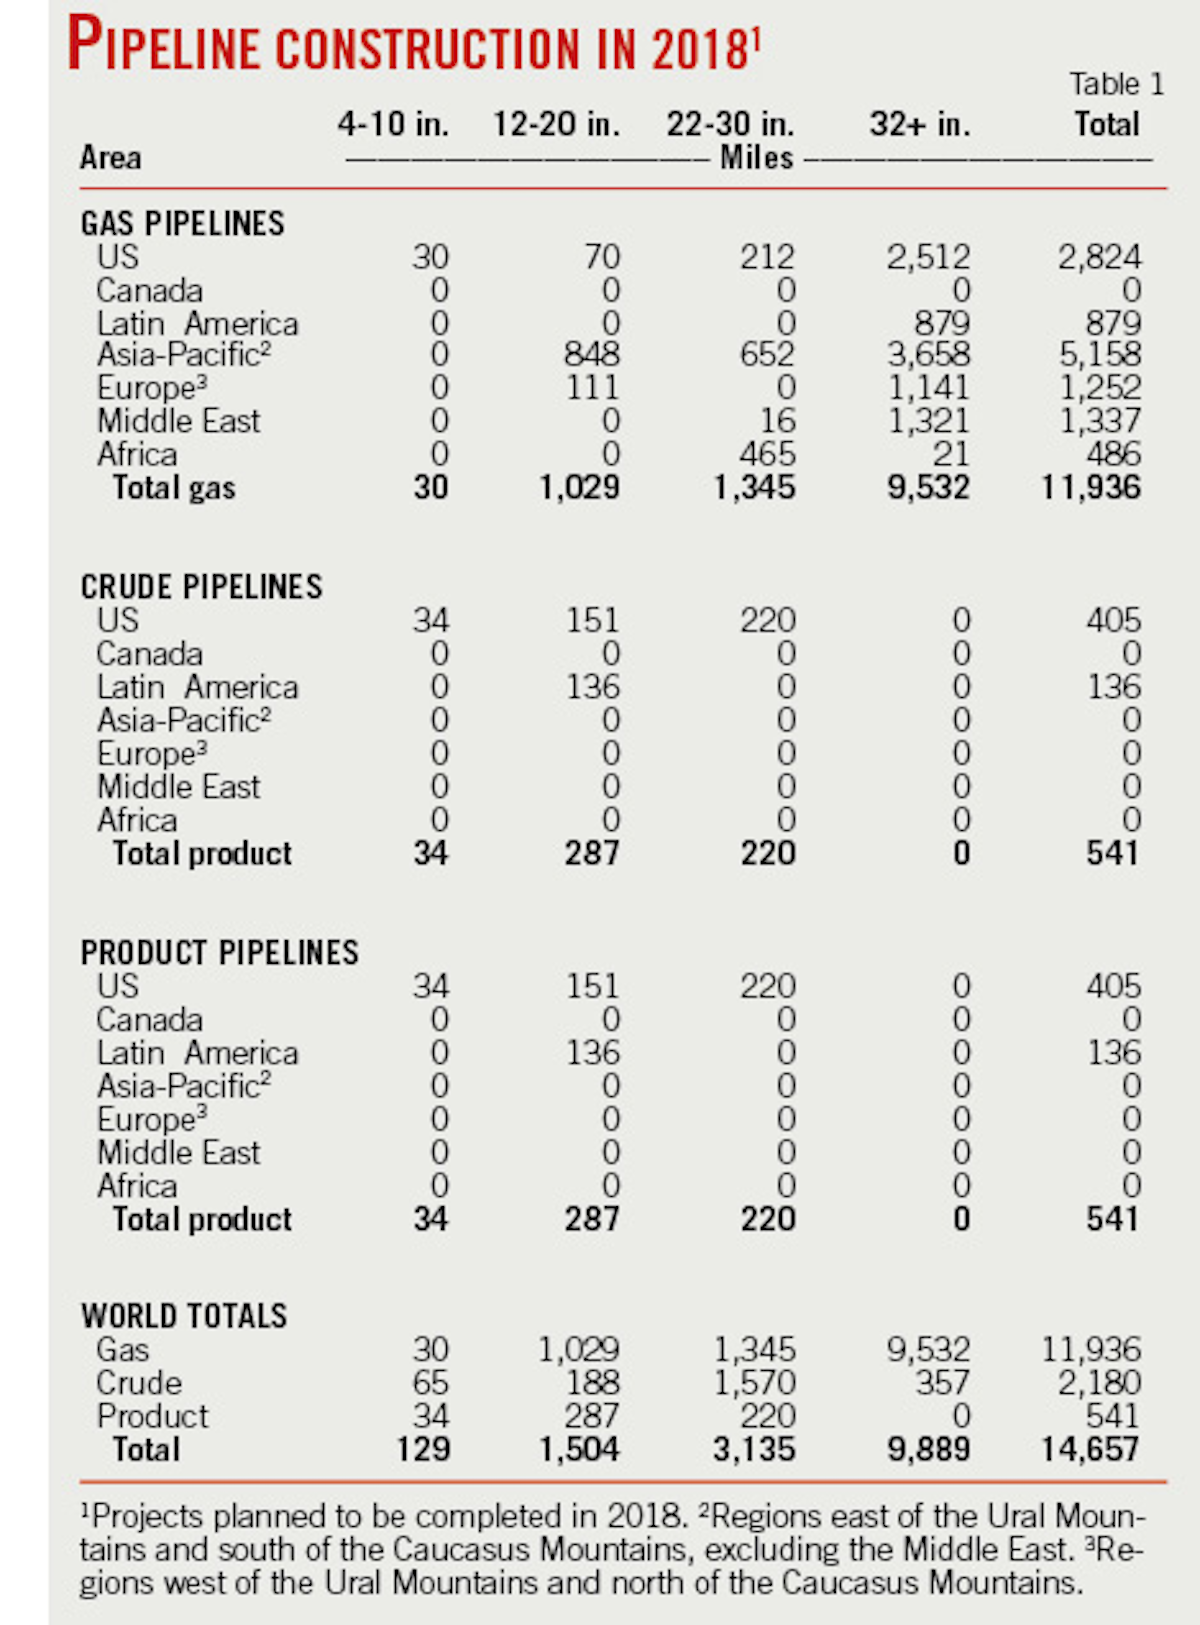 Near term pipeline plans nearly double future slows